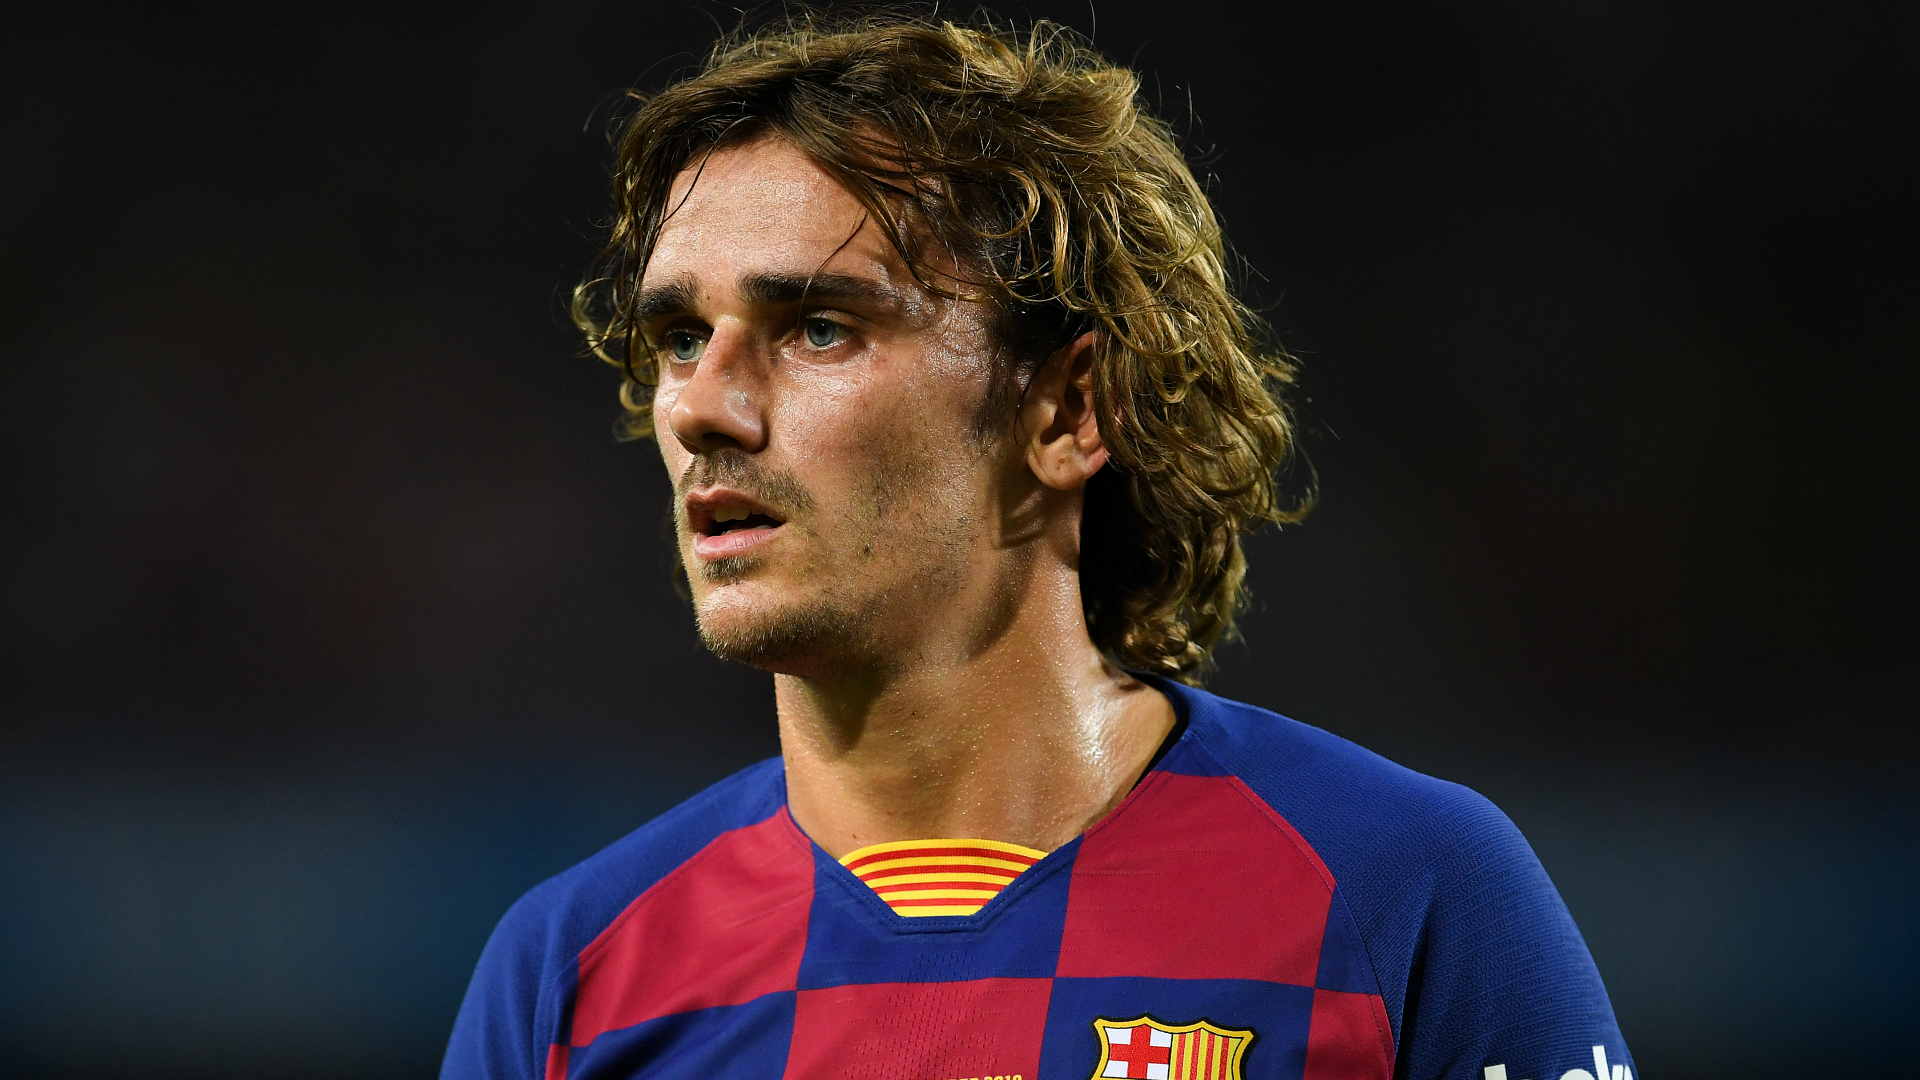 Griezmann set for Barcelona league debut as Coutinho is absent